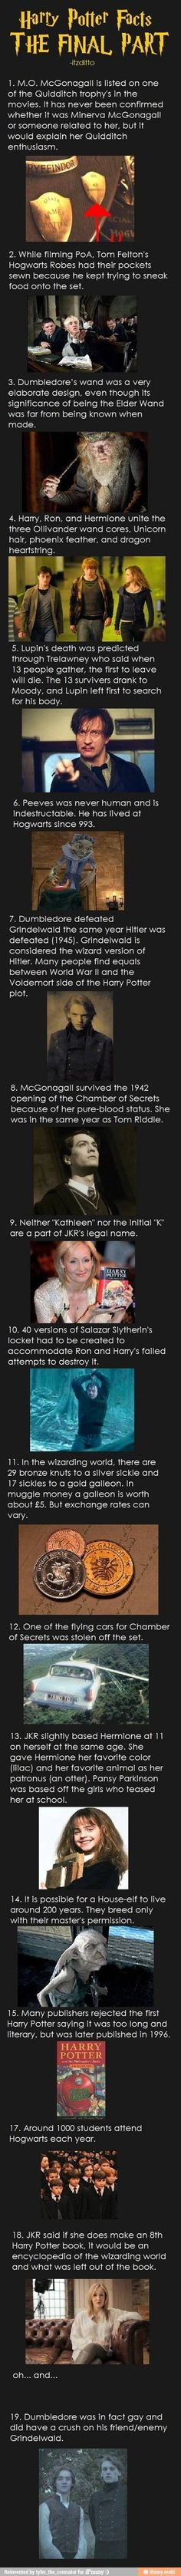 Harry Potter fun facts!